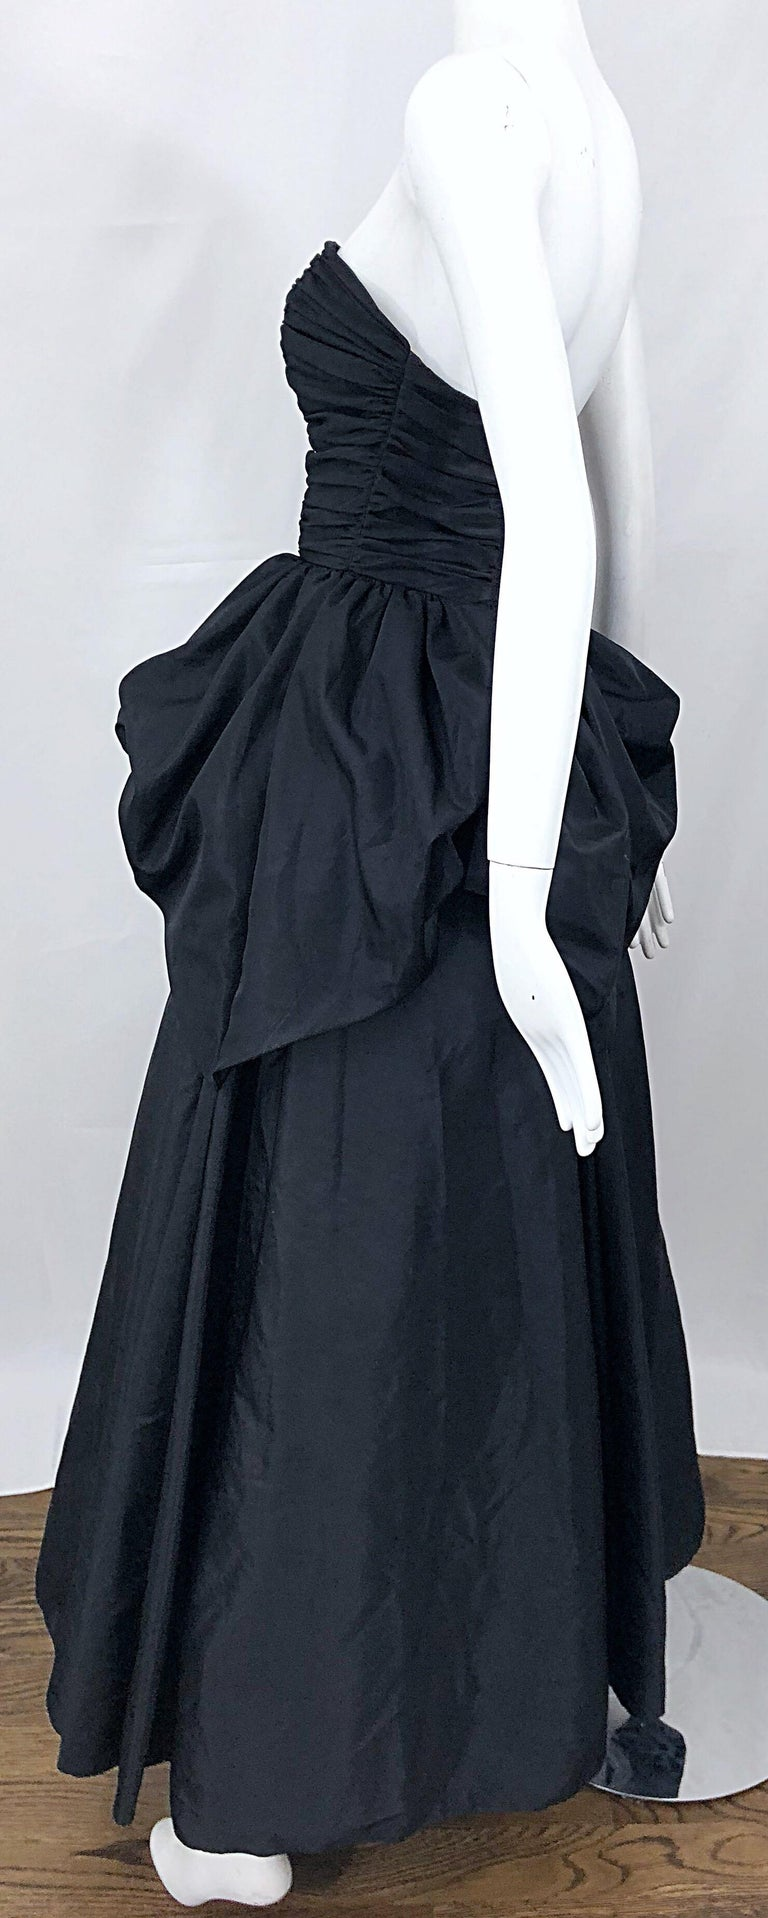 6538b34f917d Women's Vintage Mike Benet Size 0 1980s Black Strapless Rhinestone  Strapless Bustle Gown For Sale